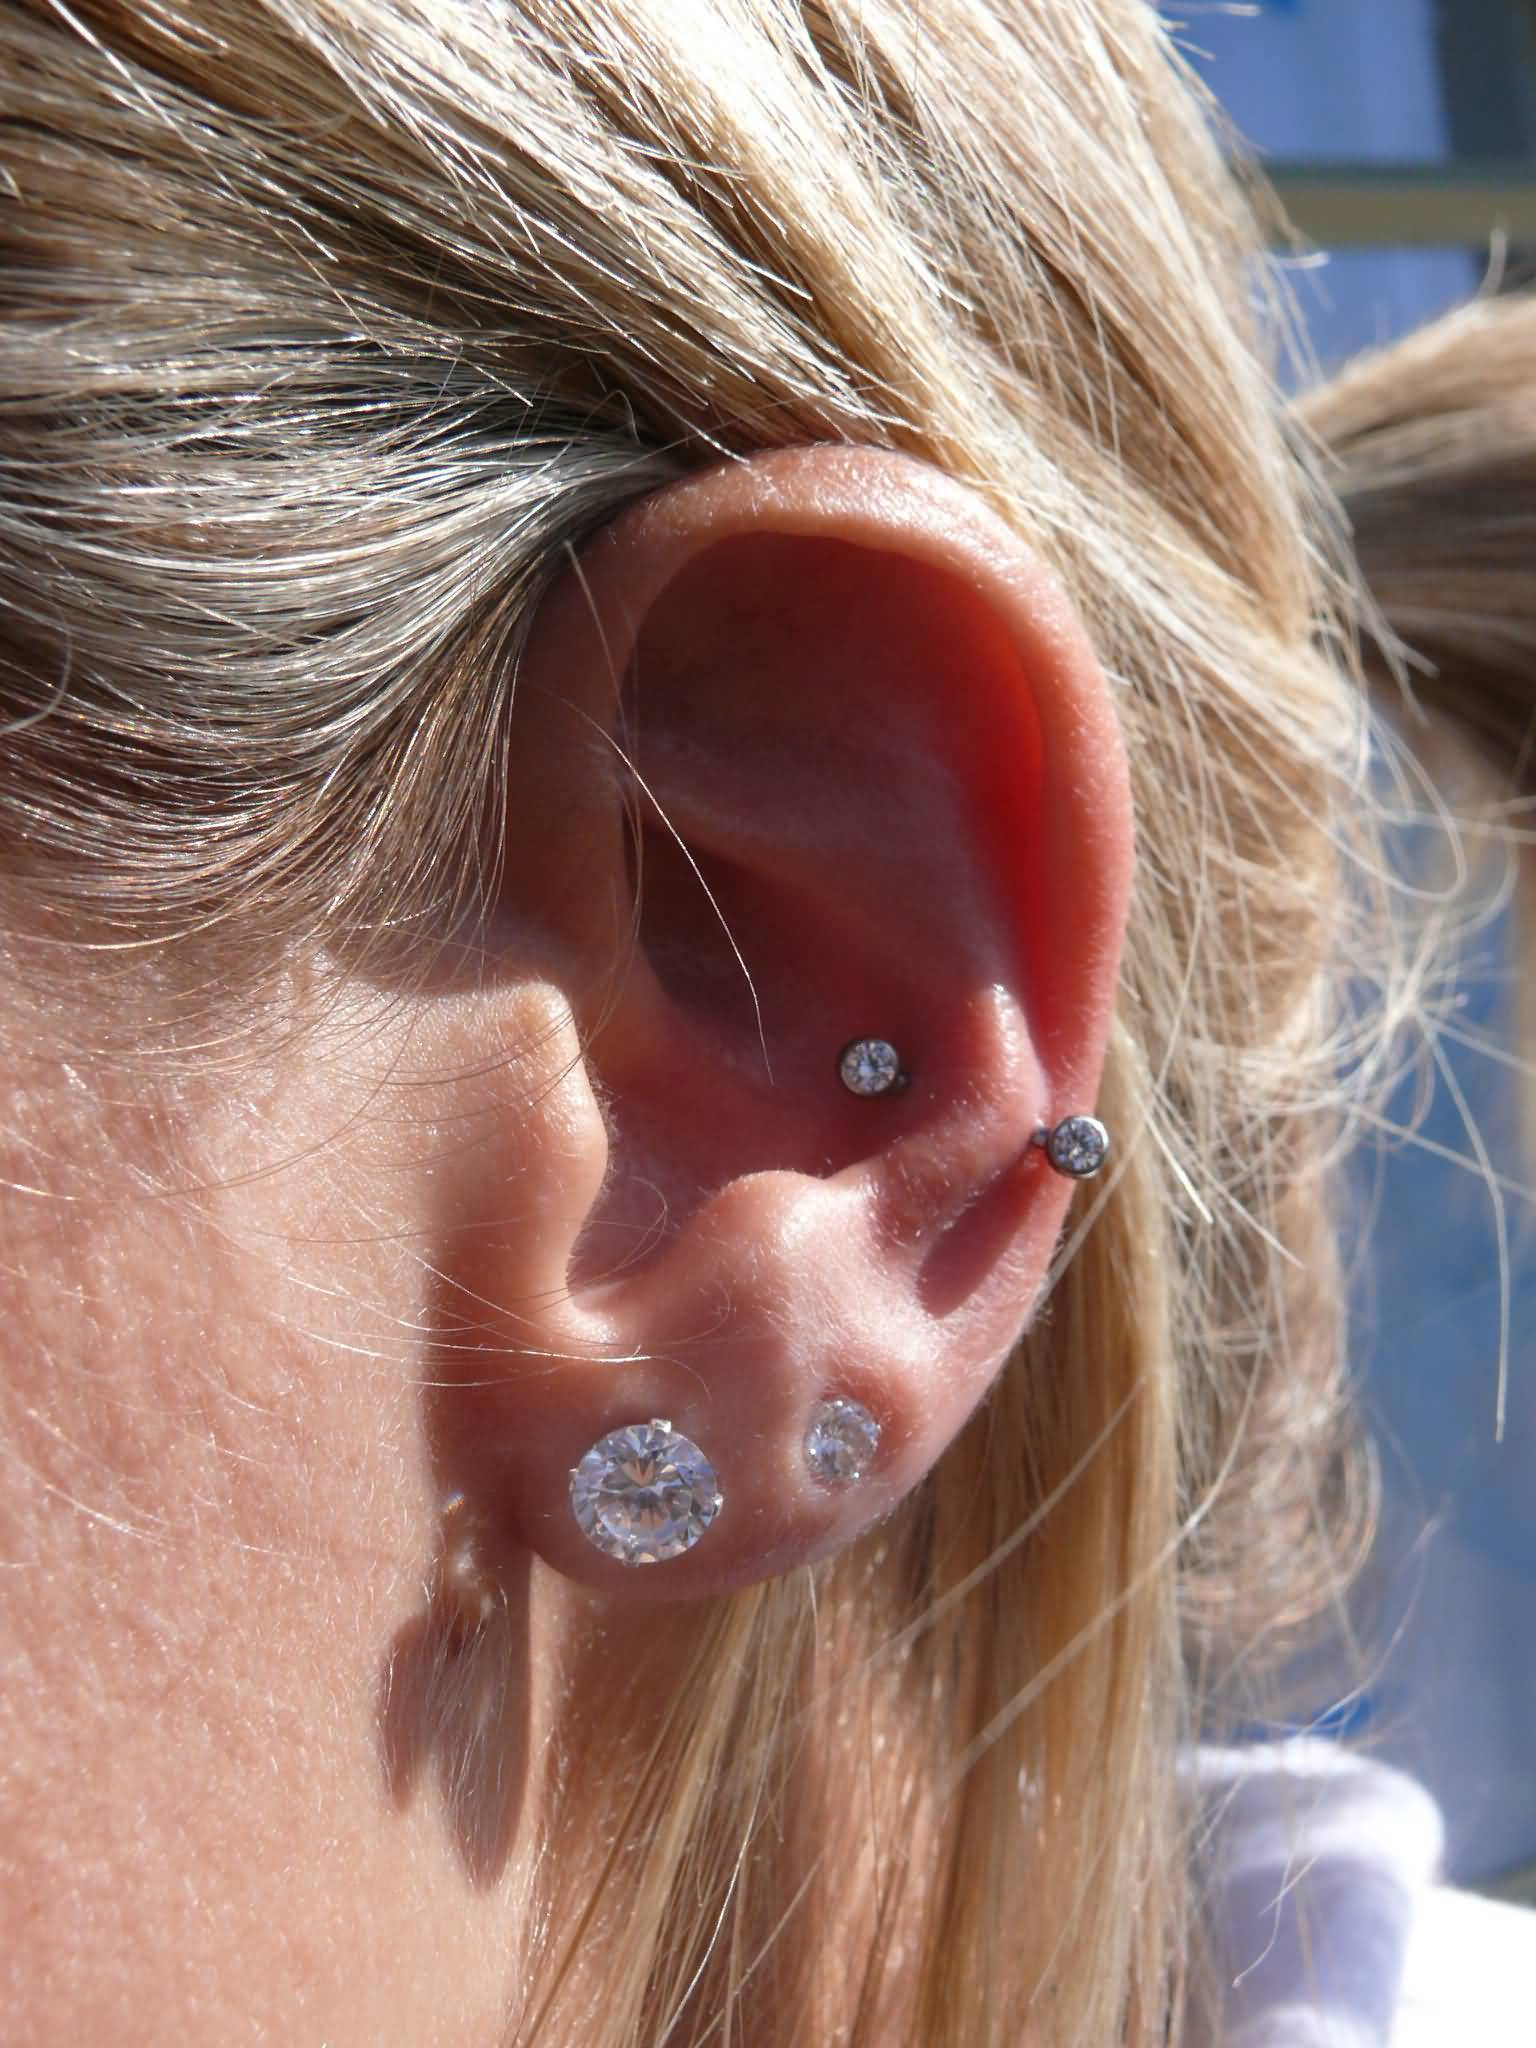 Rook And Snug Piercing With Green Barbell